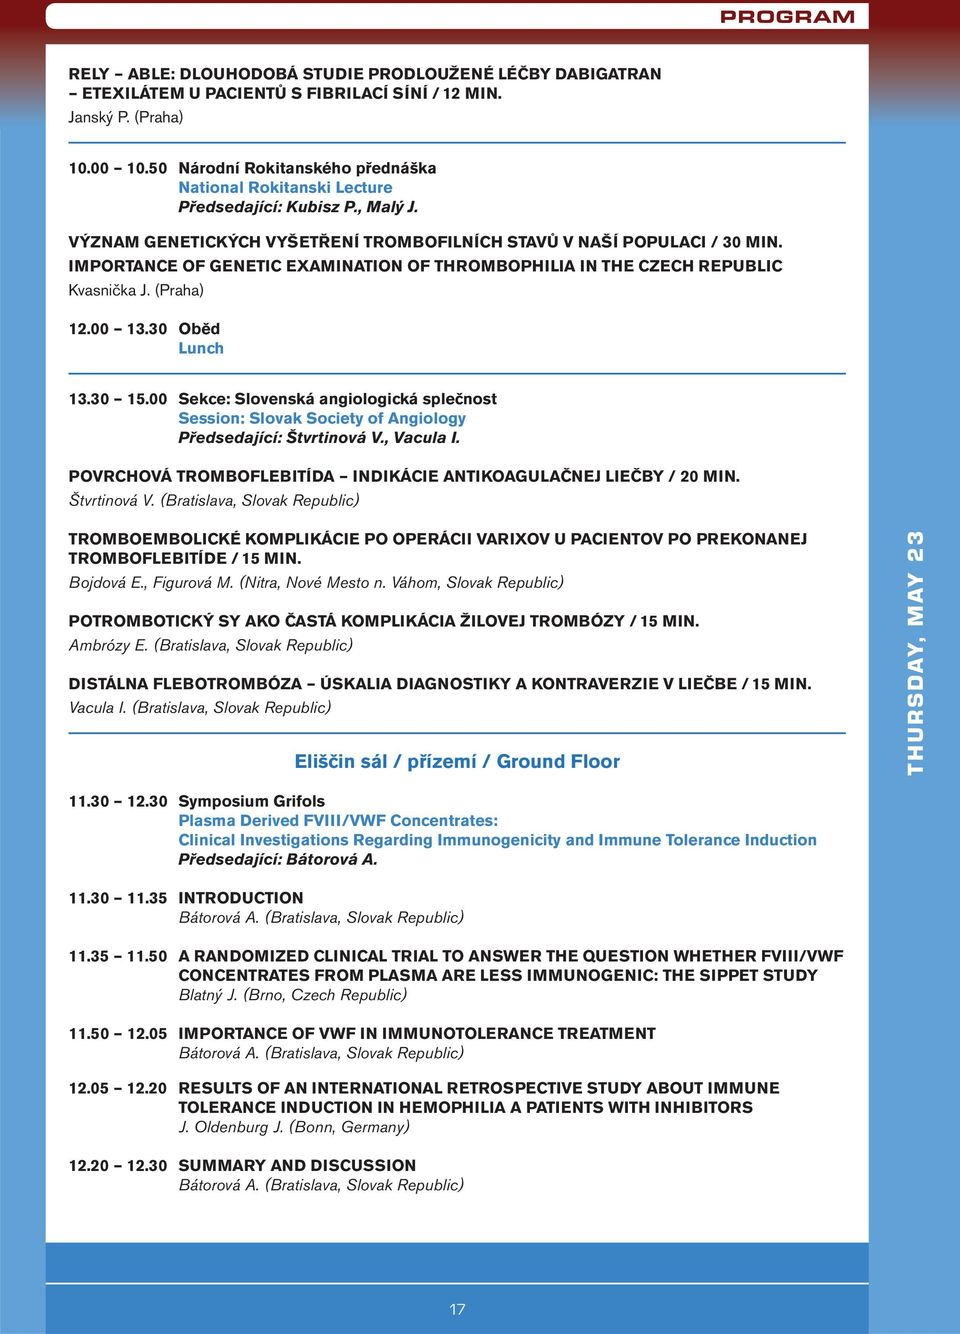 IMPORTANCE OF GENETIC EXAMINATION OF THROMBOPHILIA IN THE CZECH REPUBLIC Kvasnička J. (Praha) 12.00 13.30 Oběd Lunch 13.30 15.